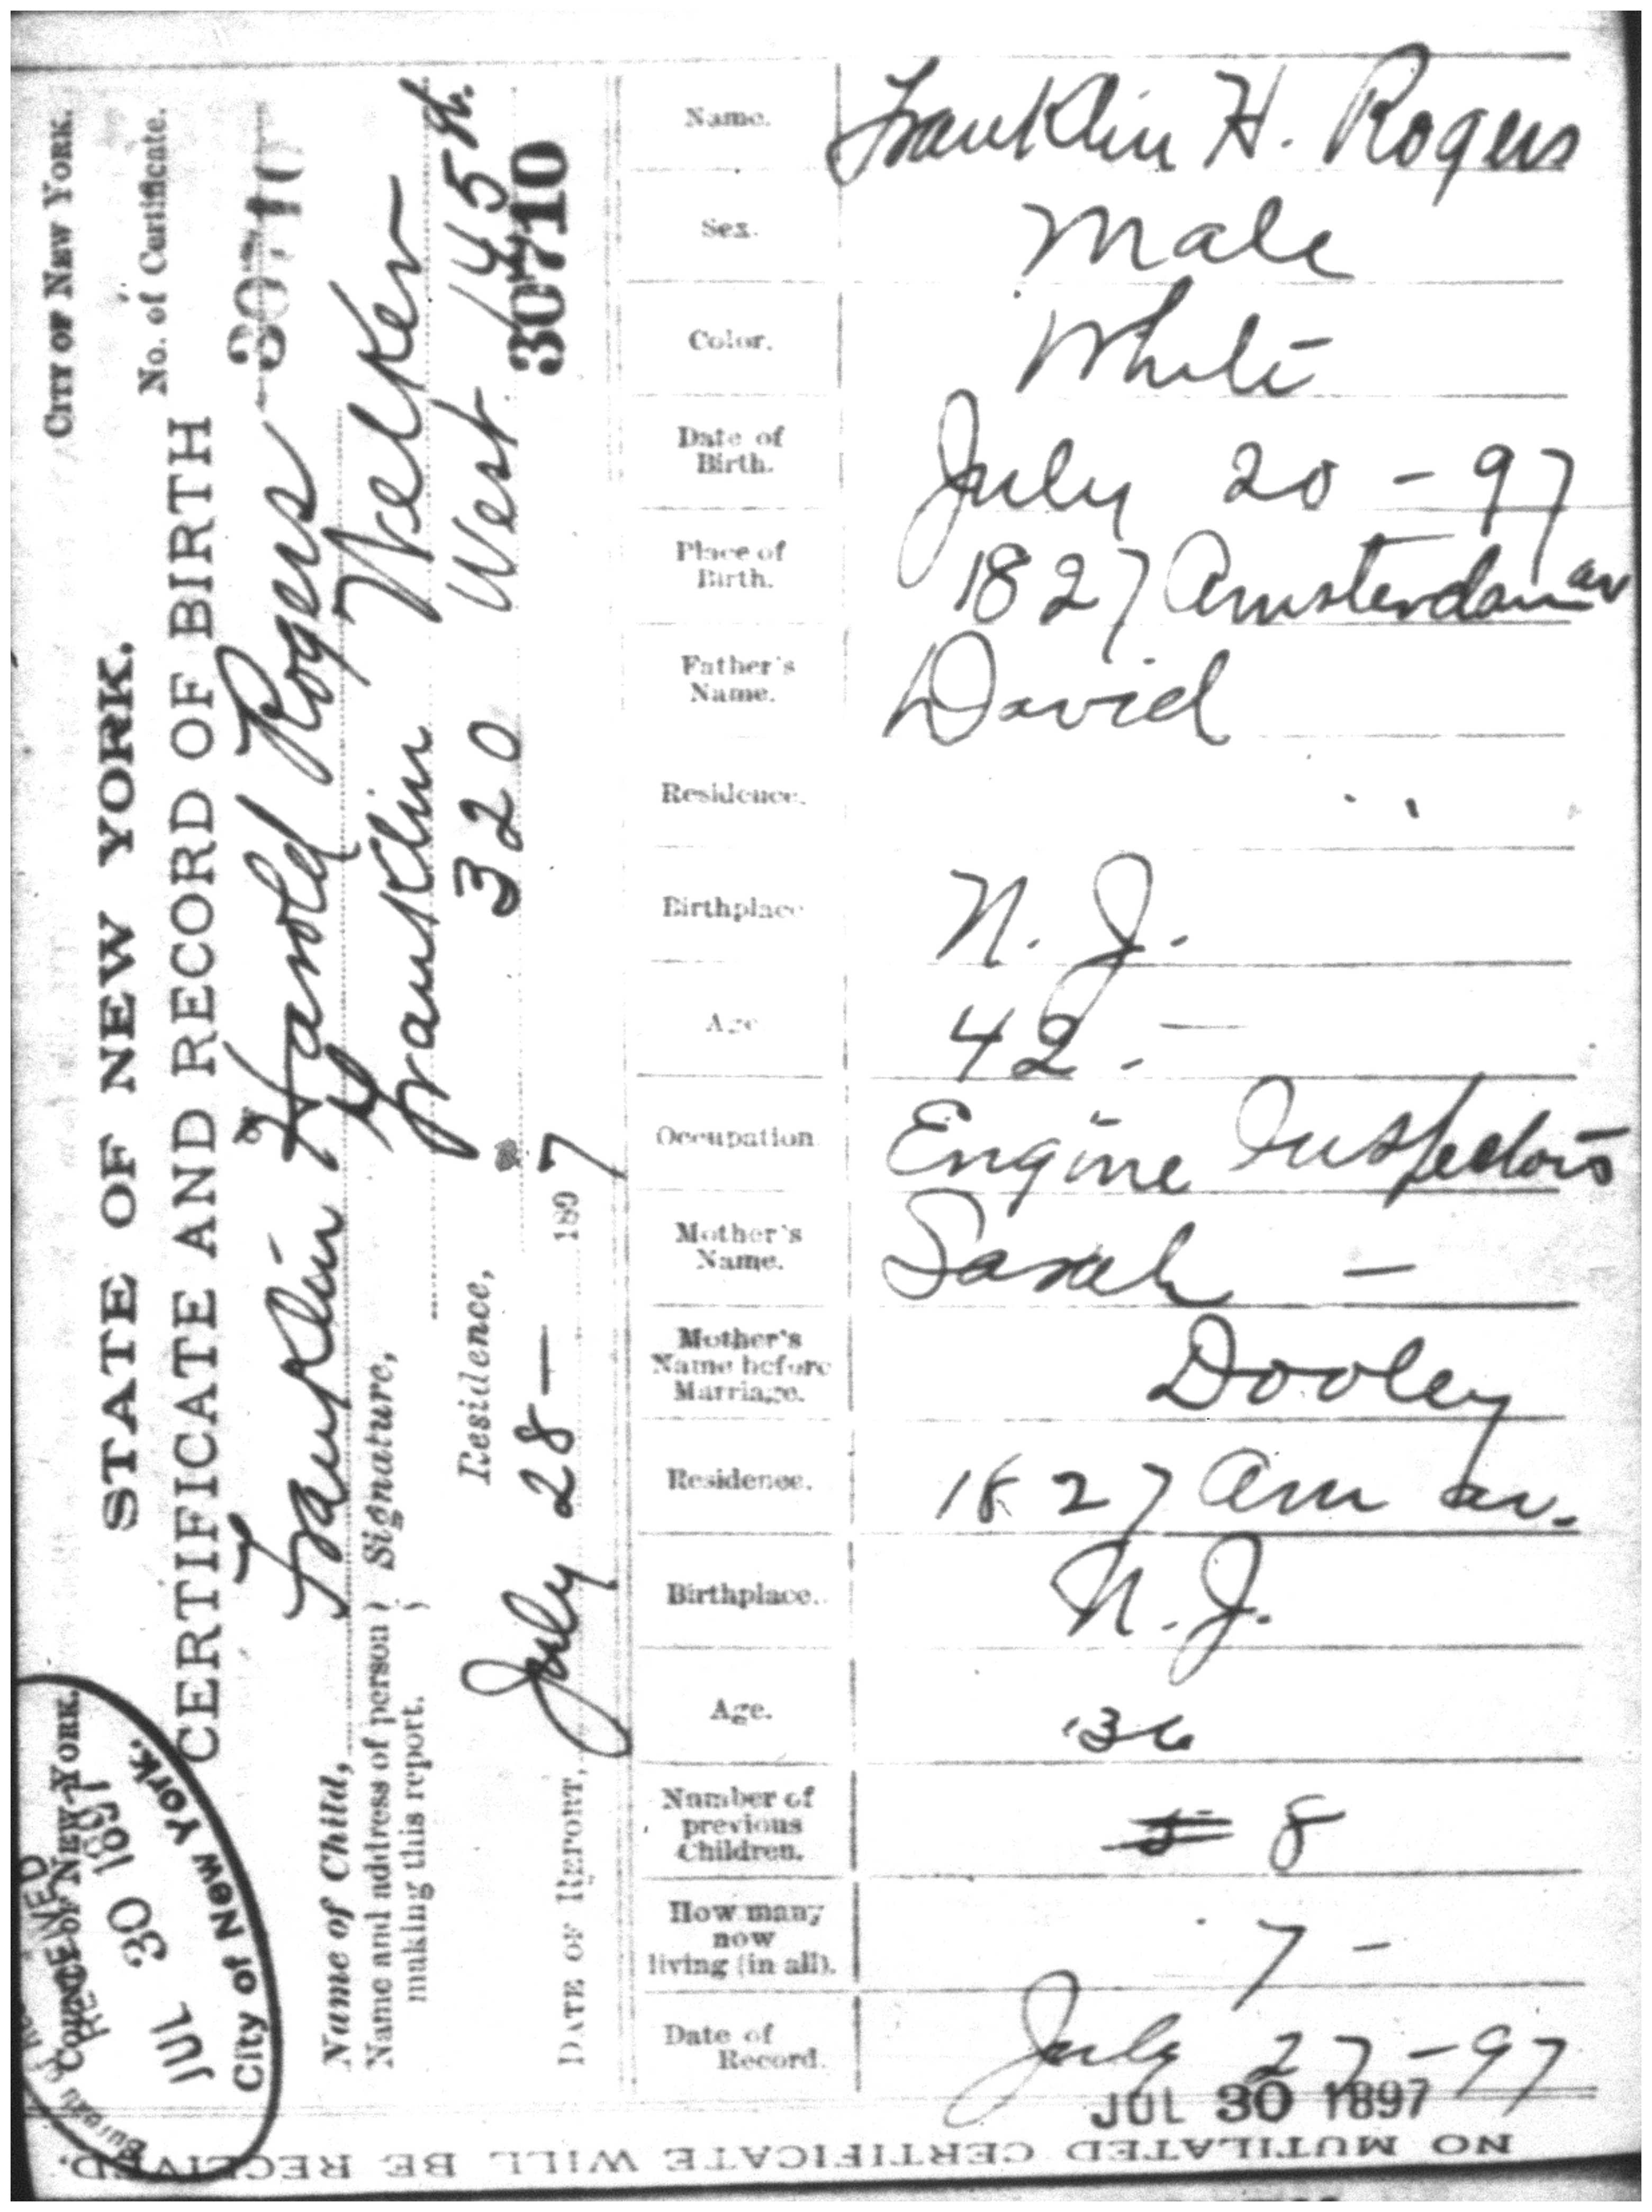 Documents Franklin Harold Rogers Birth Certificate 20 July 1897